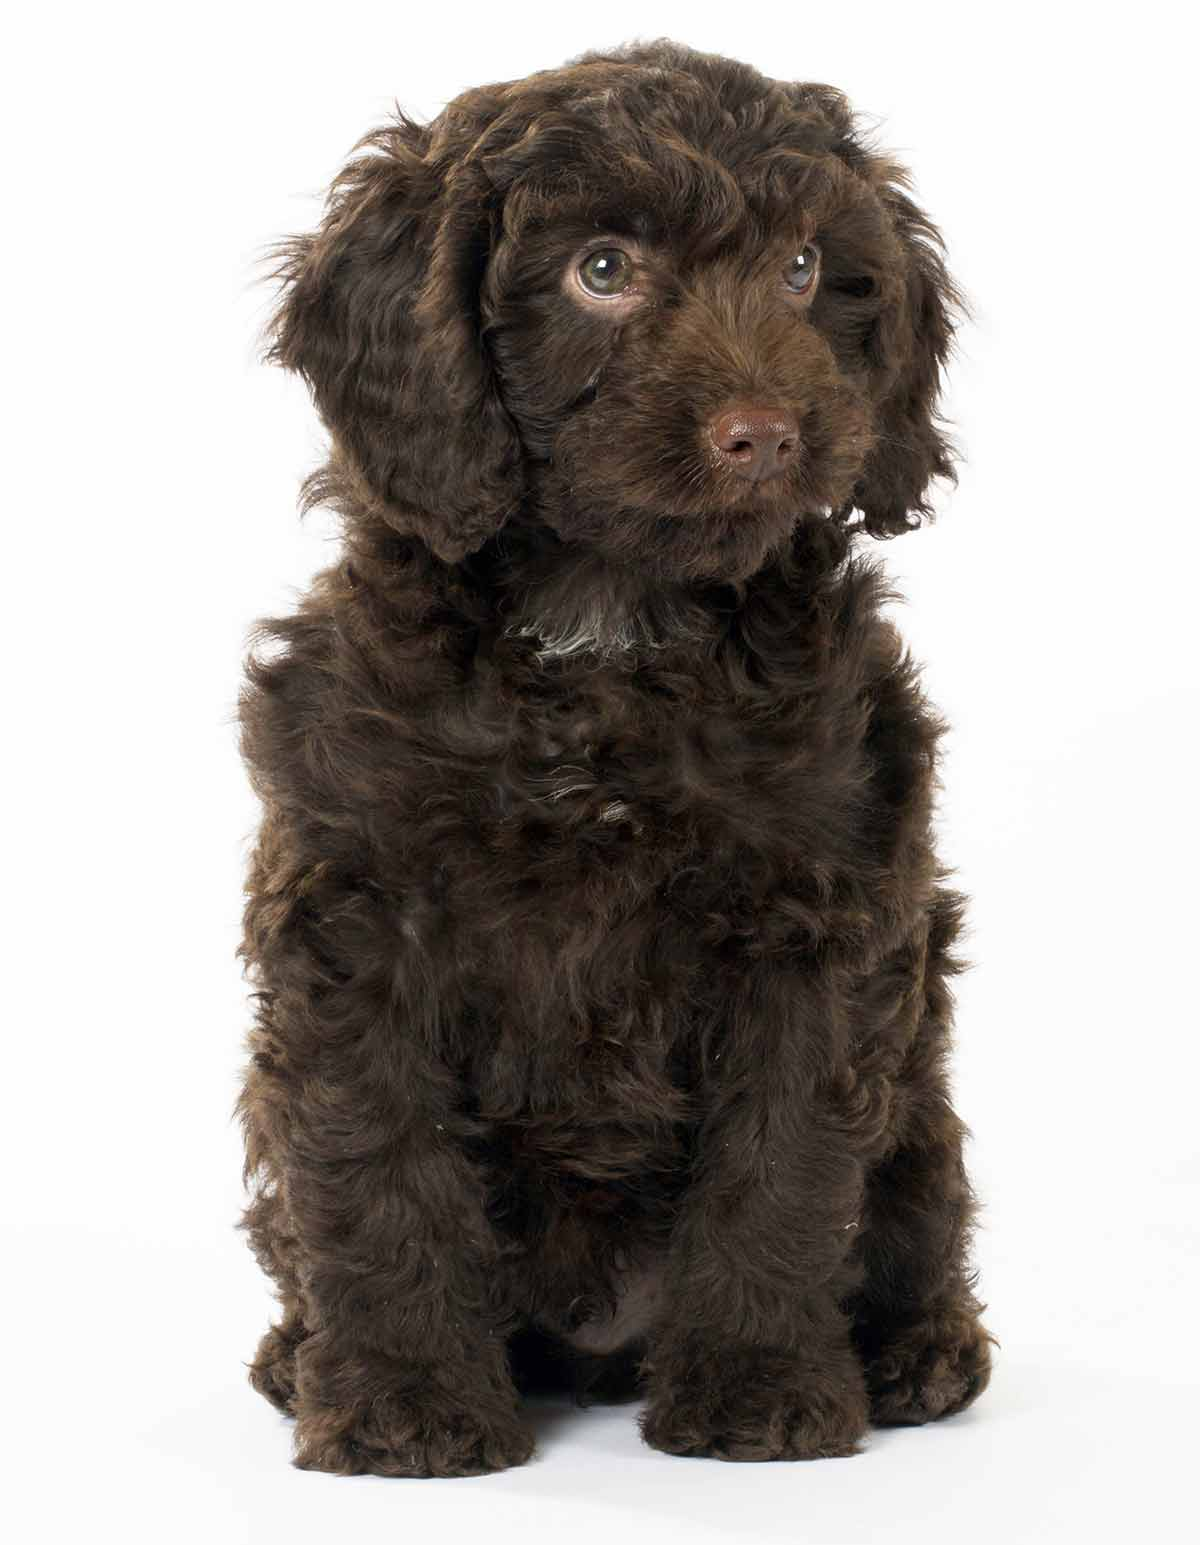 Springerdoodle The Springer Spaniel Poodle Mix